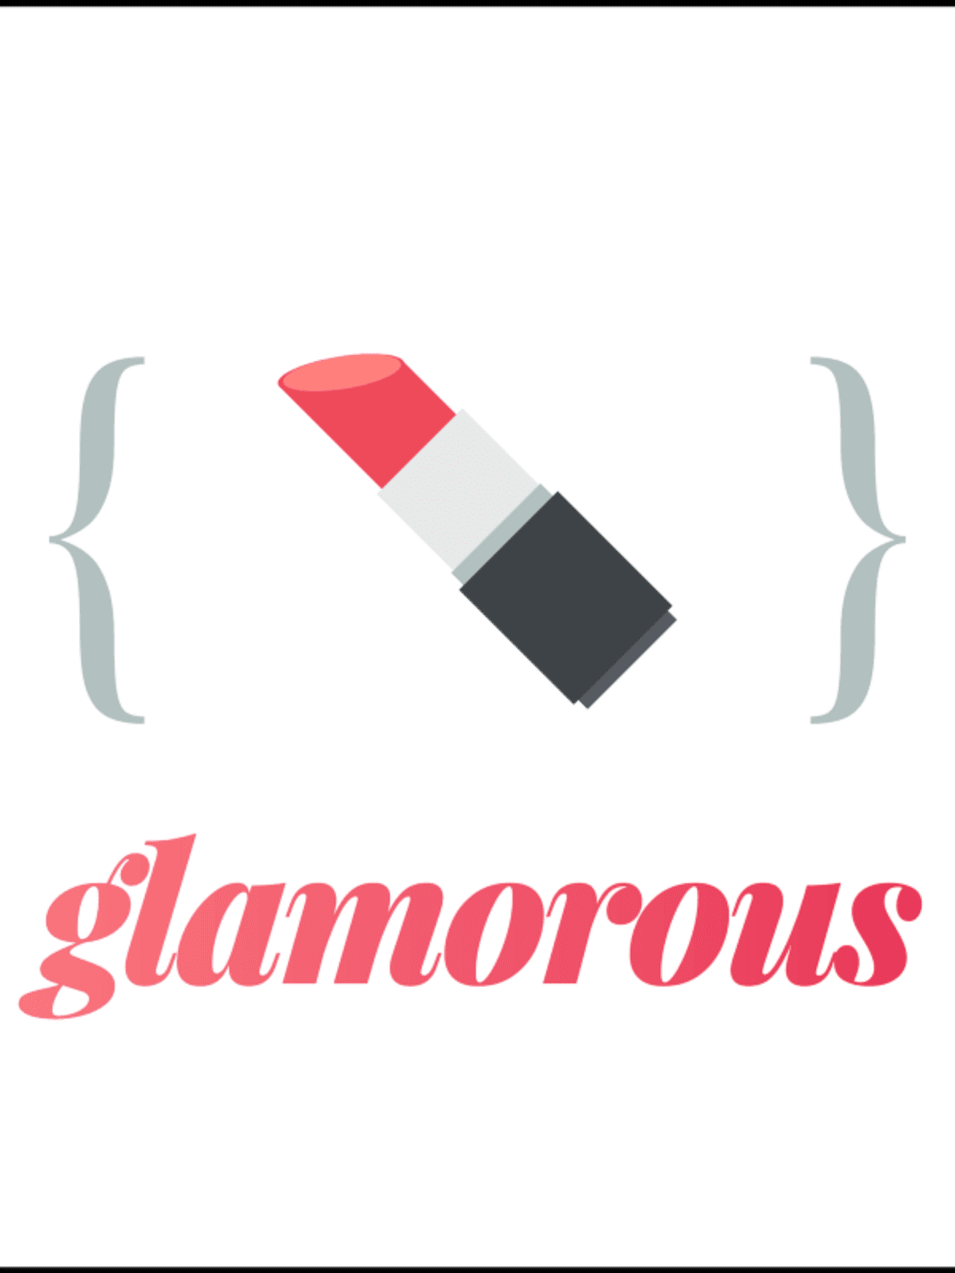 The glamorous logo, shamelessly inspired (with permission) by styled-components